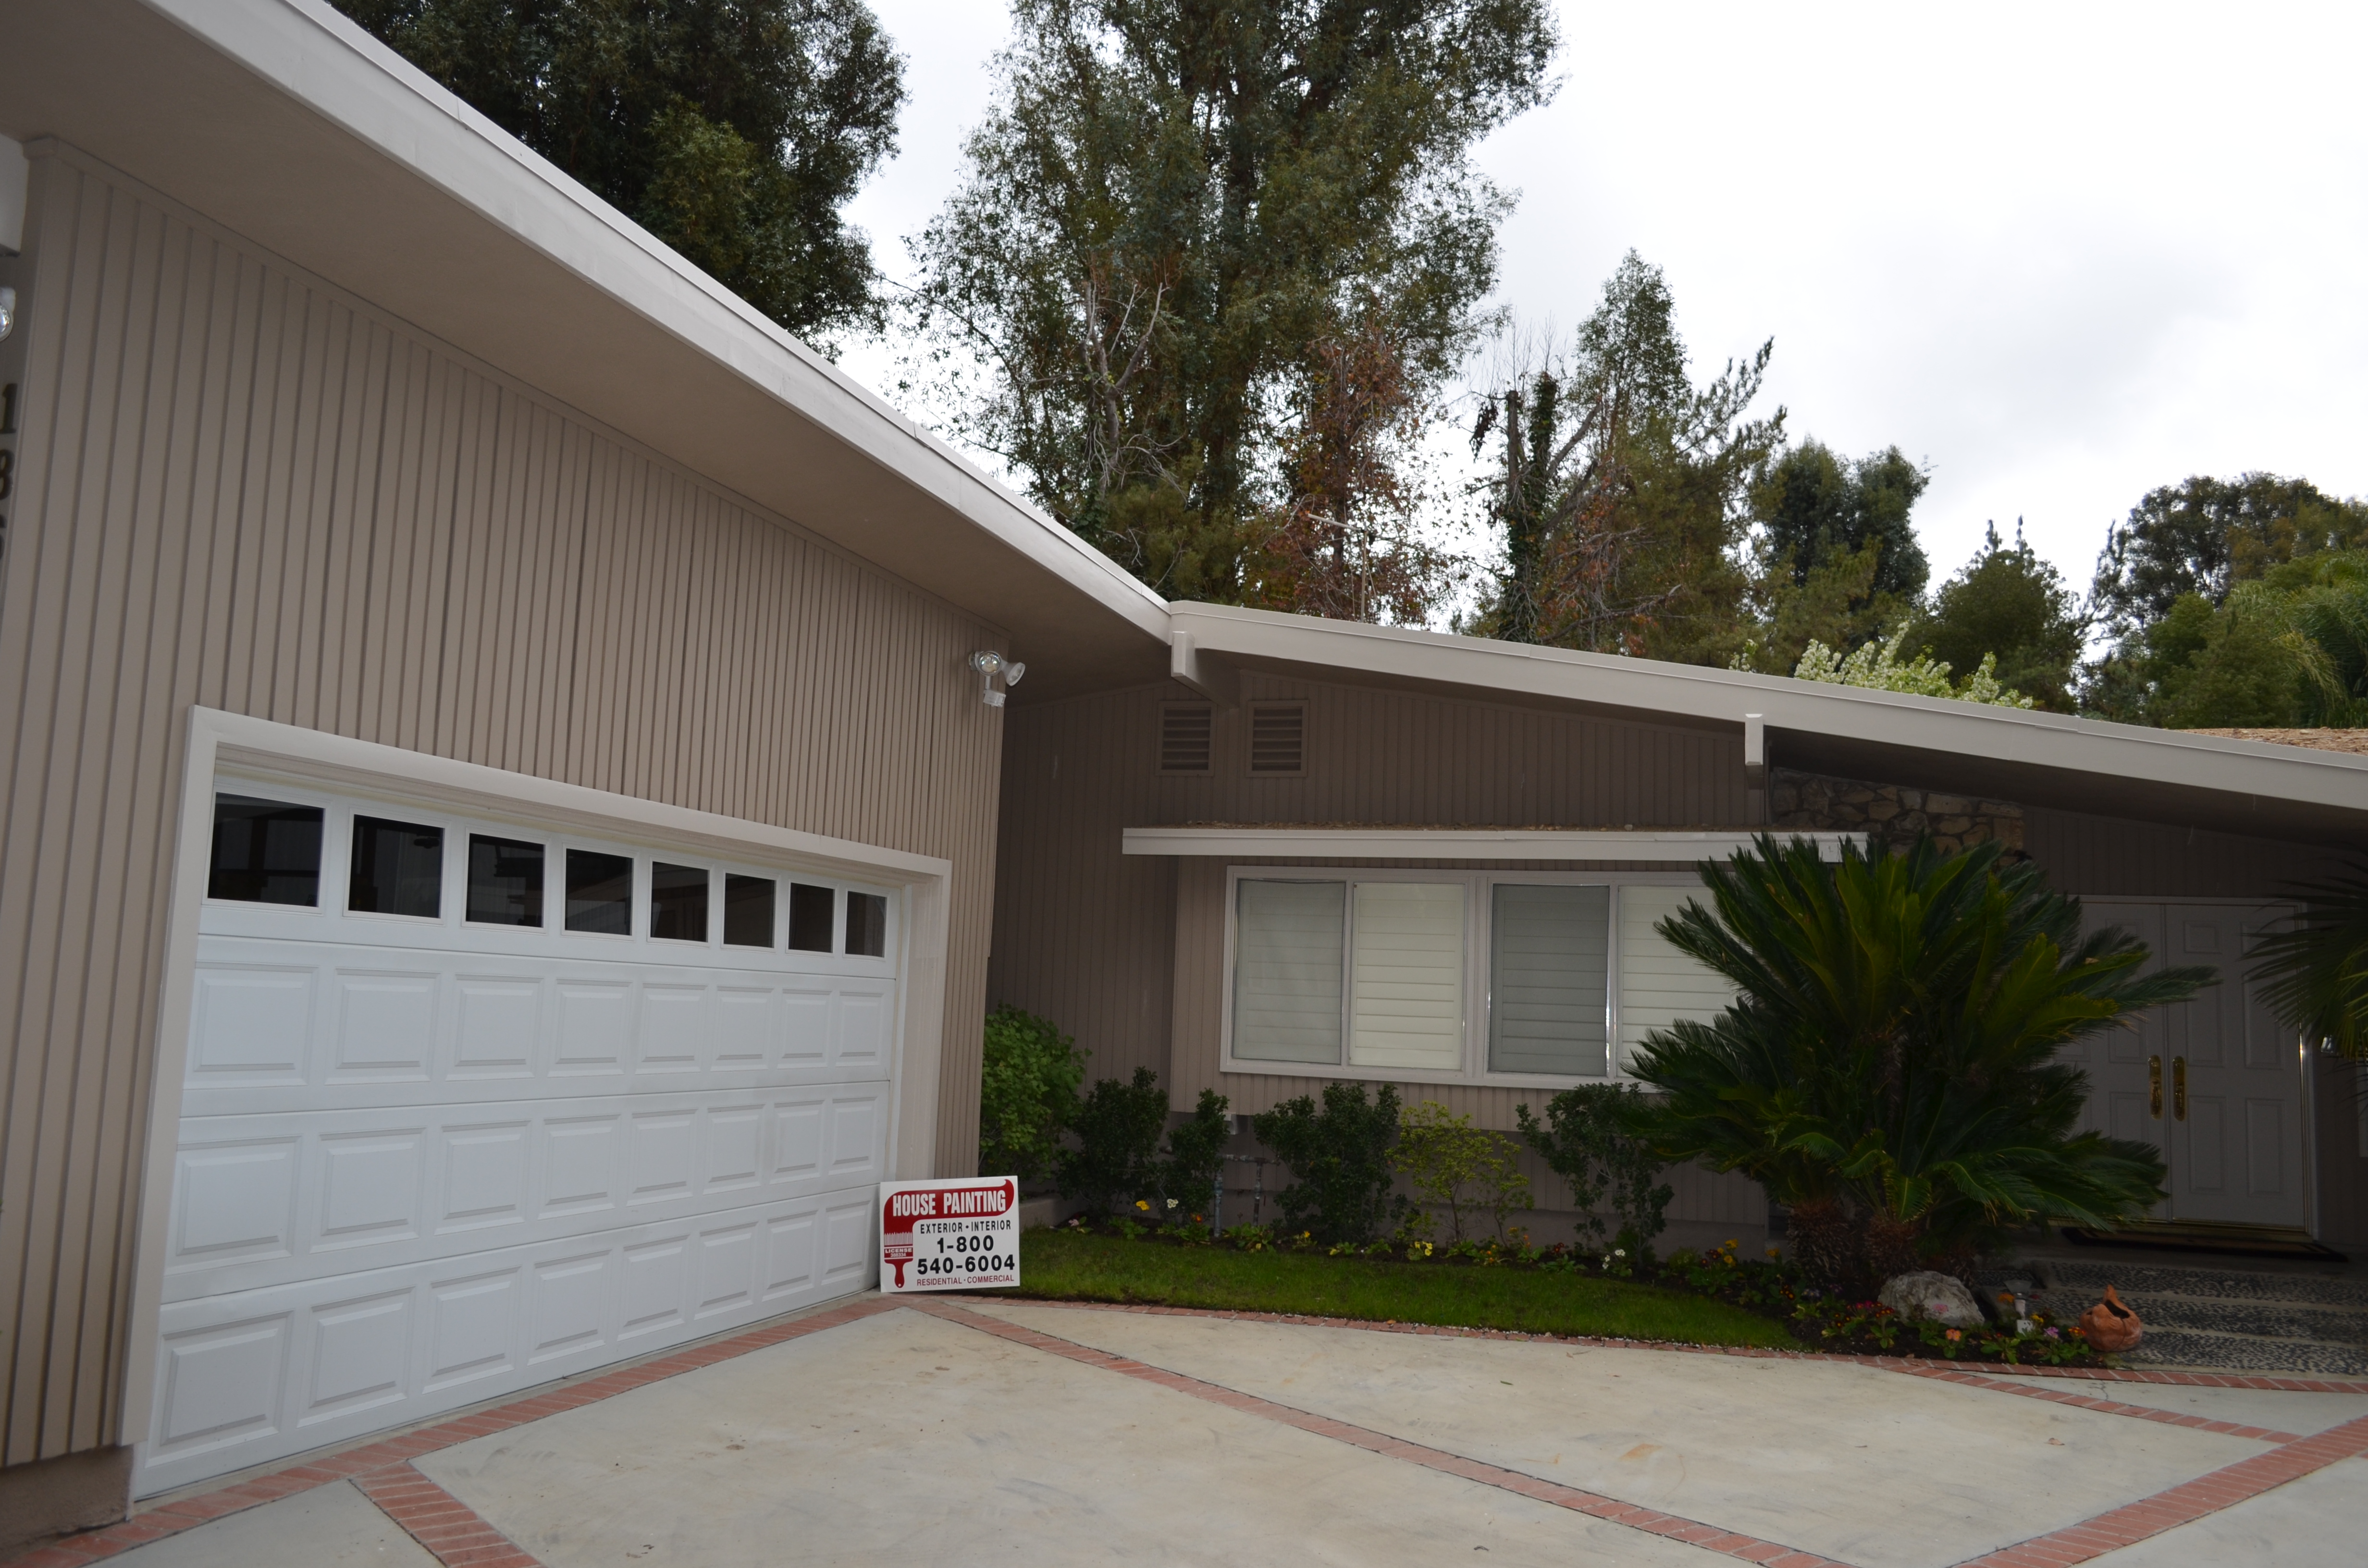 Los Angeles Painting Contractor, House Painting Inc., successfully completed an exterior residential painting job in Los Angeles 90004.